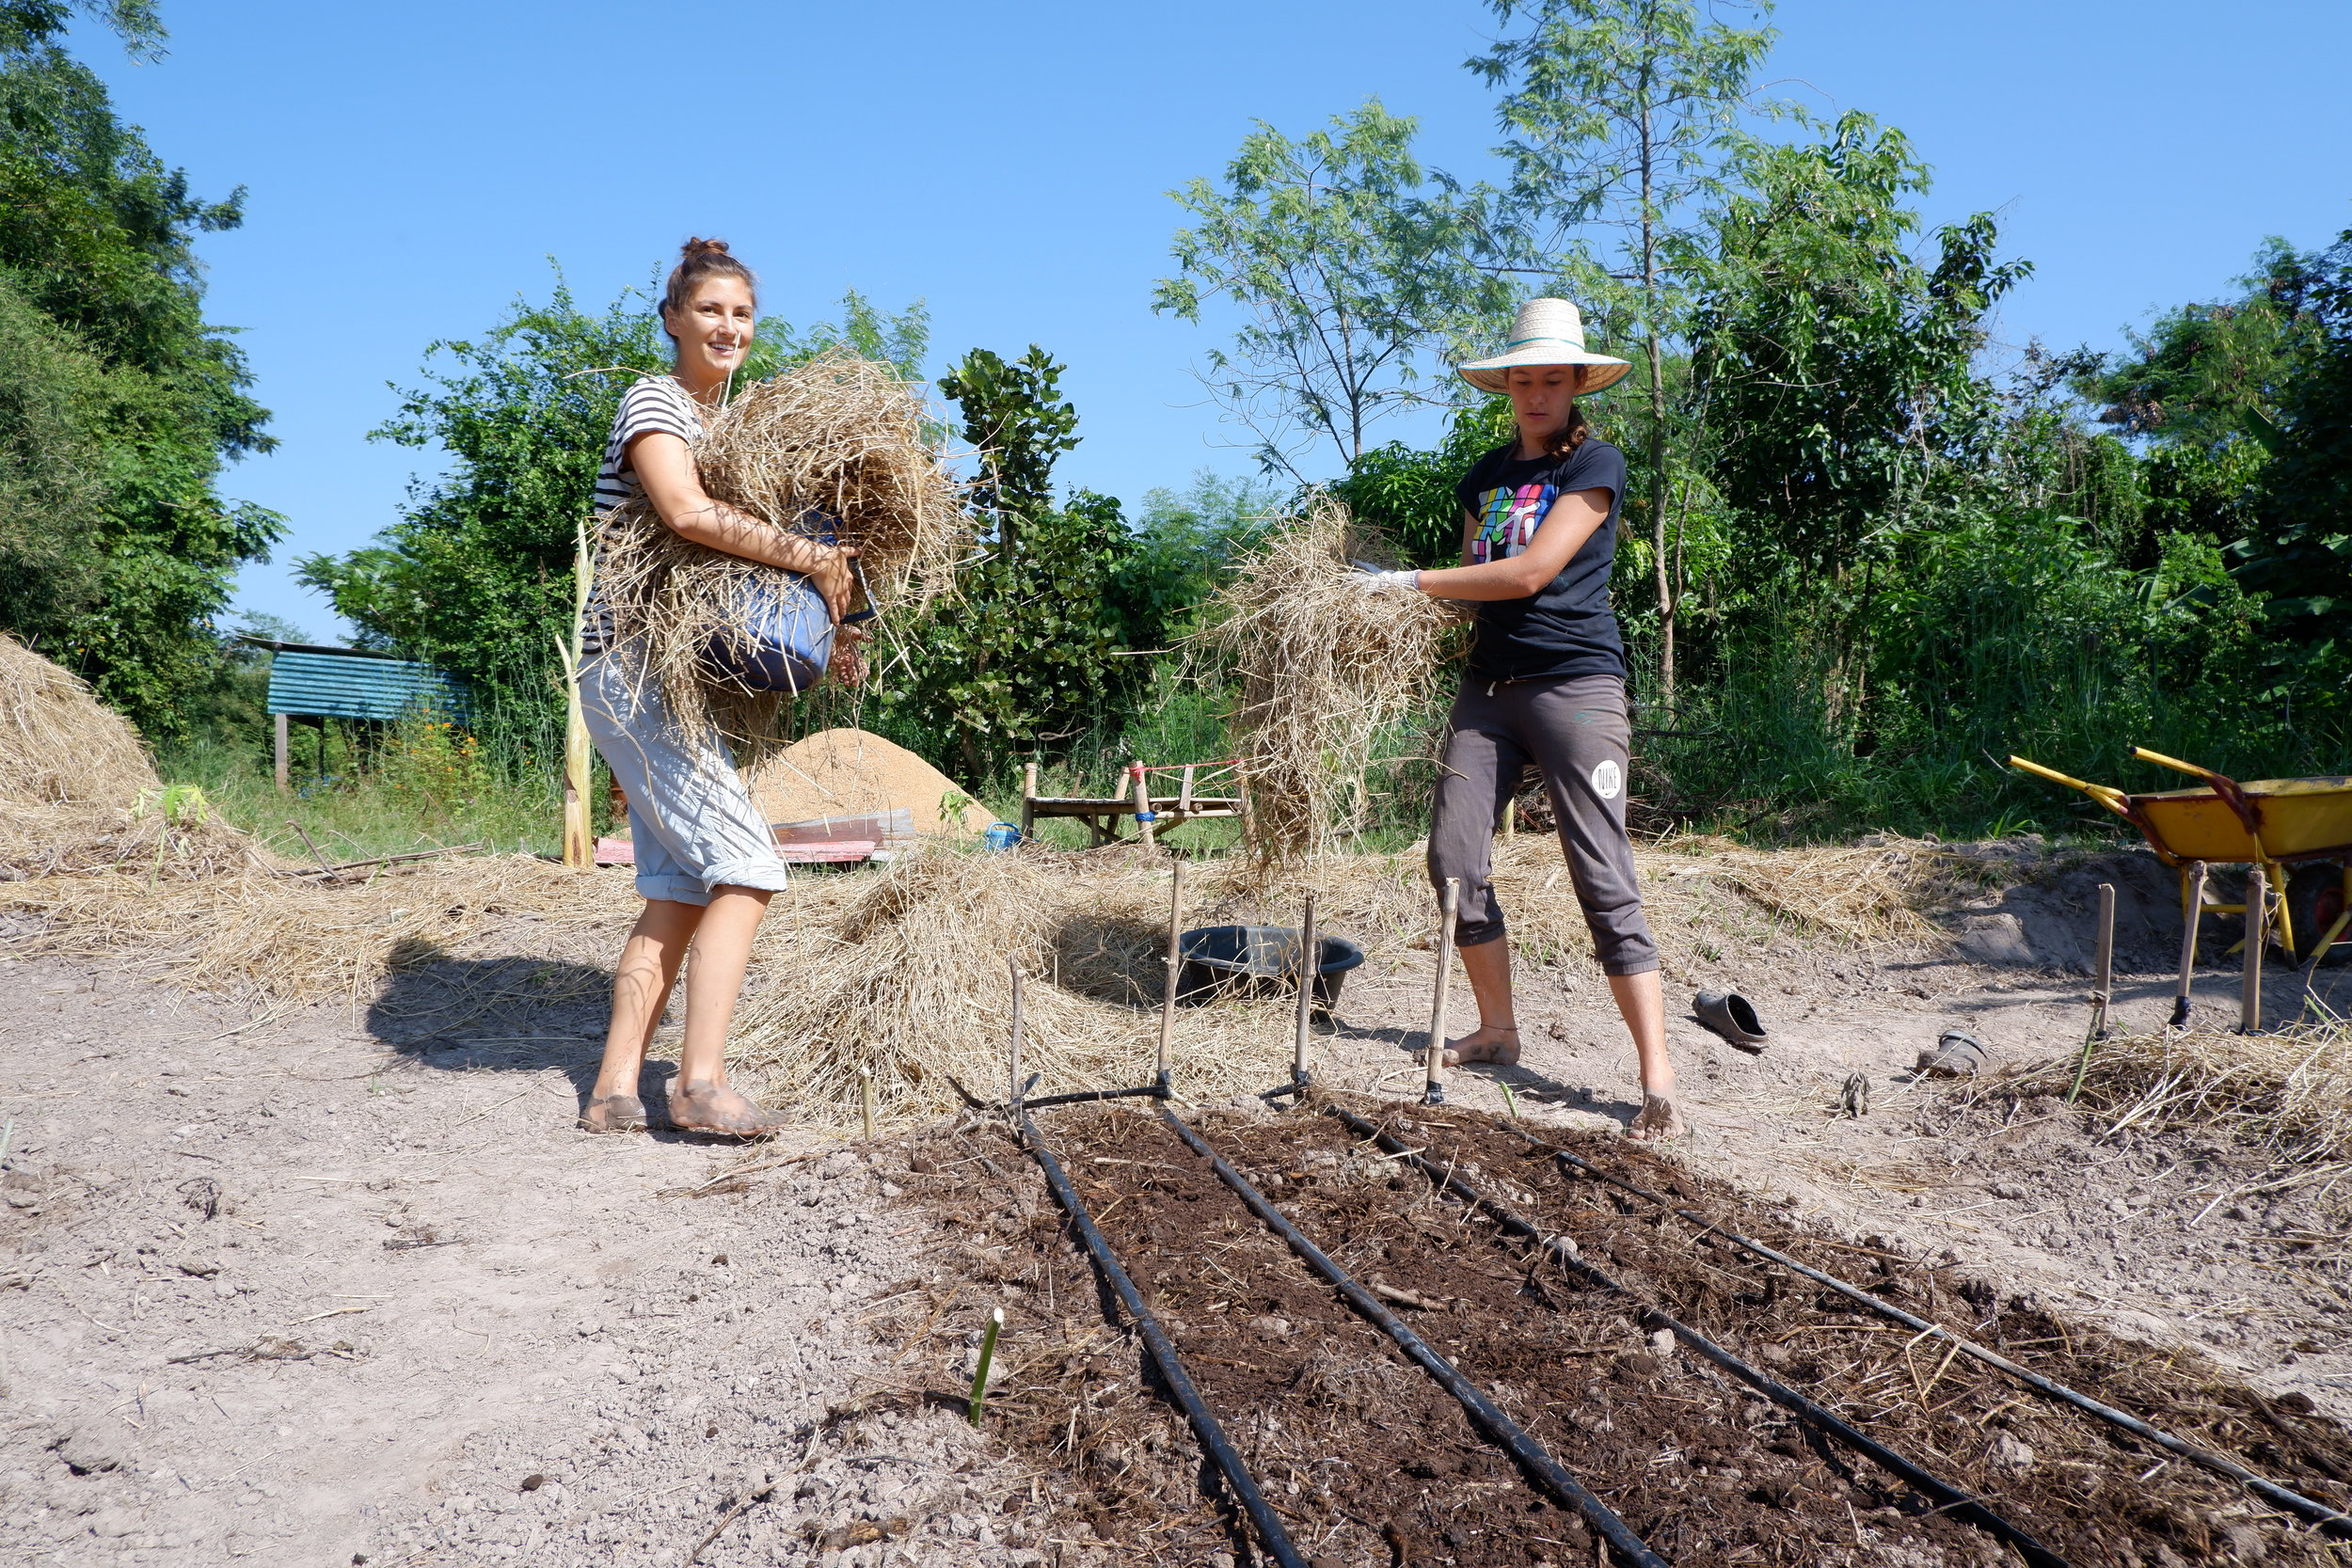 Mulching with straw brings a protective last layer against weeds.  Photo: Julien De Backer